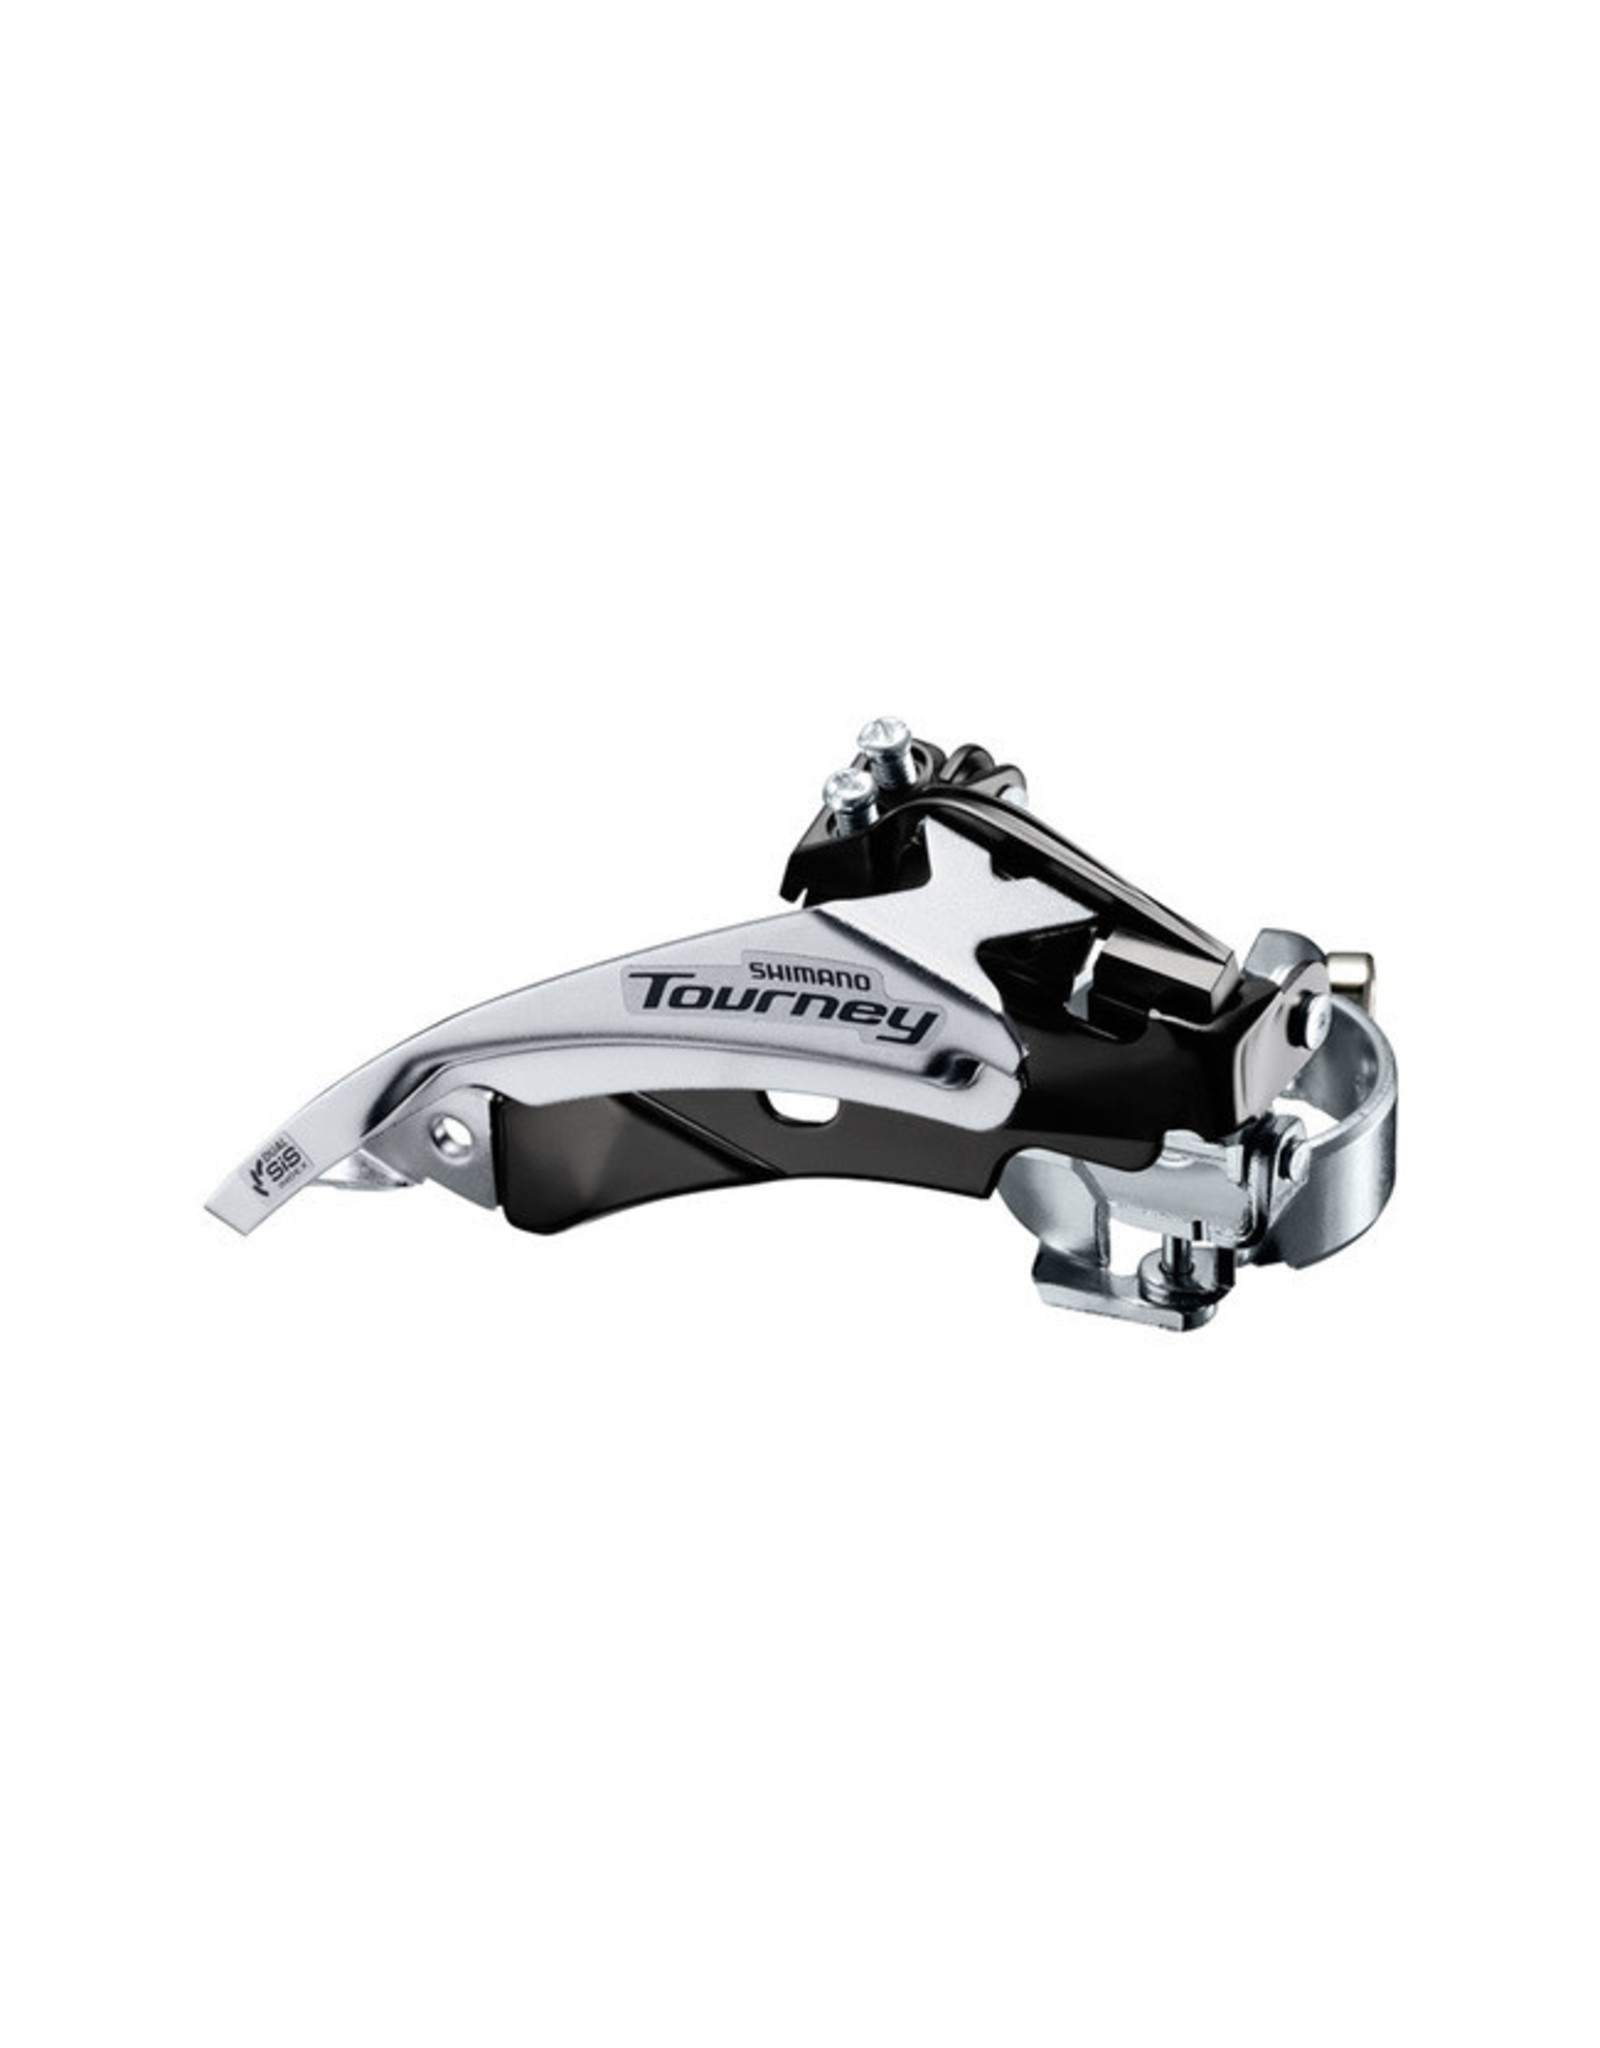 Shimano Front derailleur Shim Tourney TY510 6/7s top swing 34.9/31.8/28.6mm 20-48T